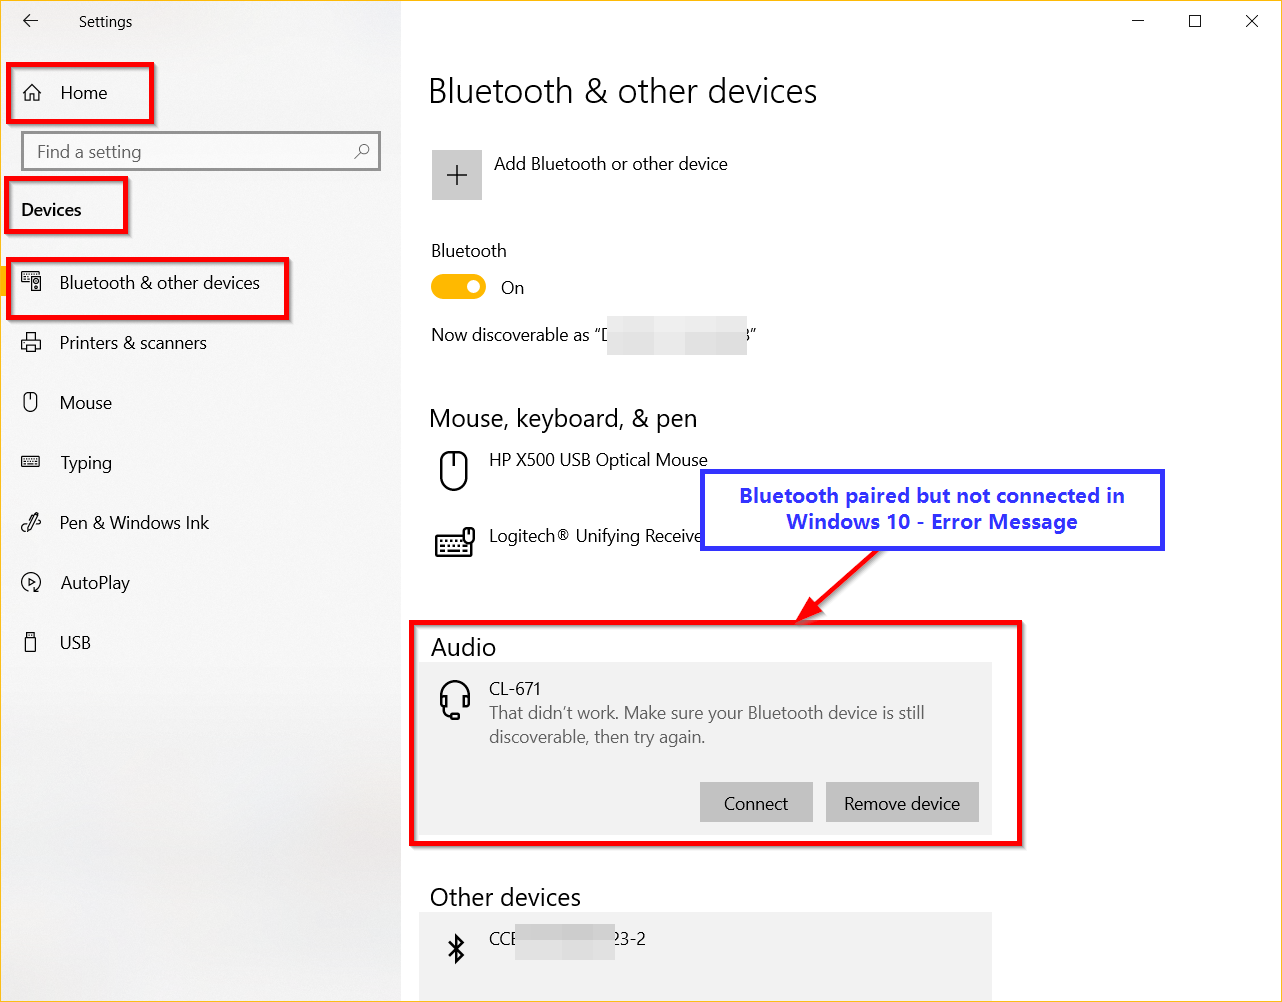 bluetooth device paired but not connected